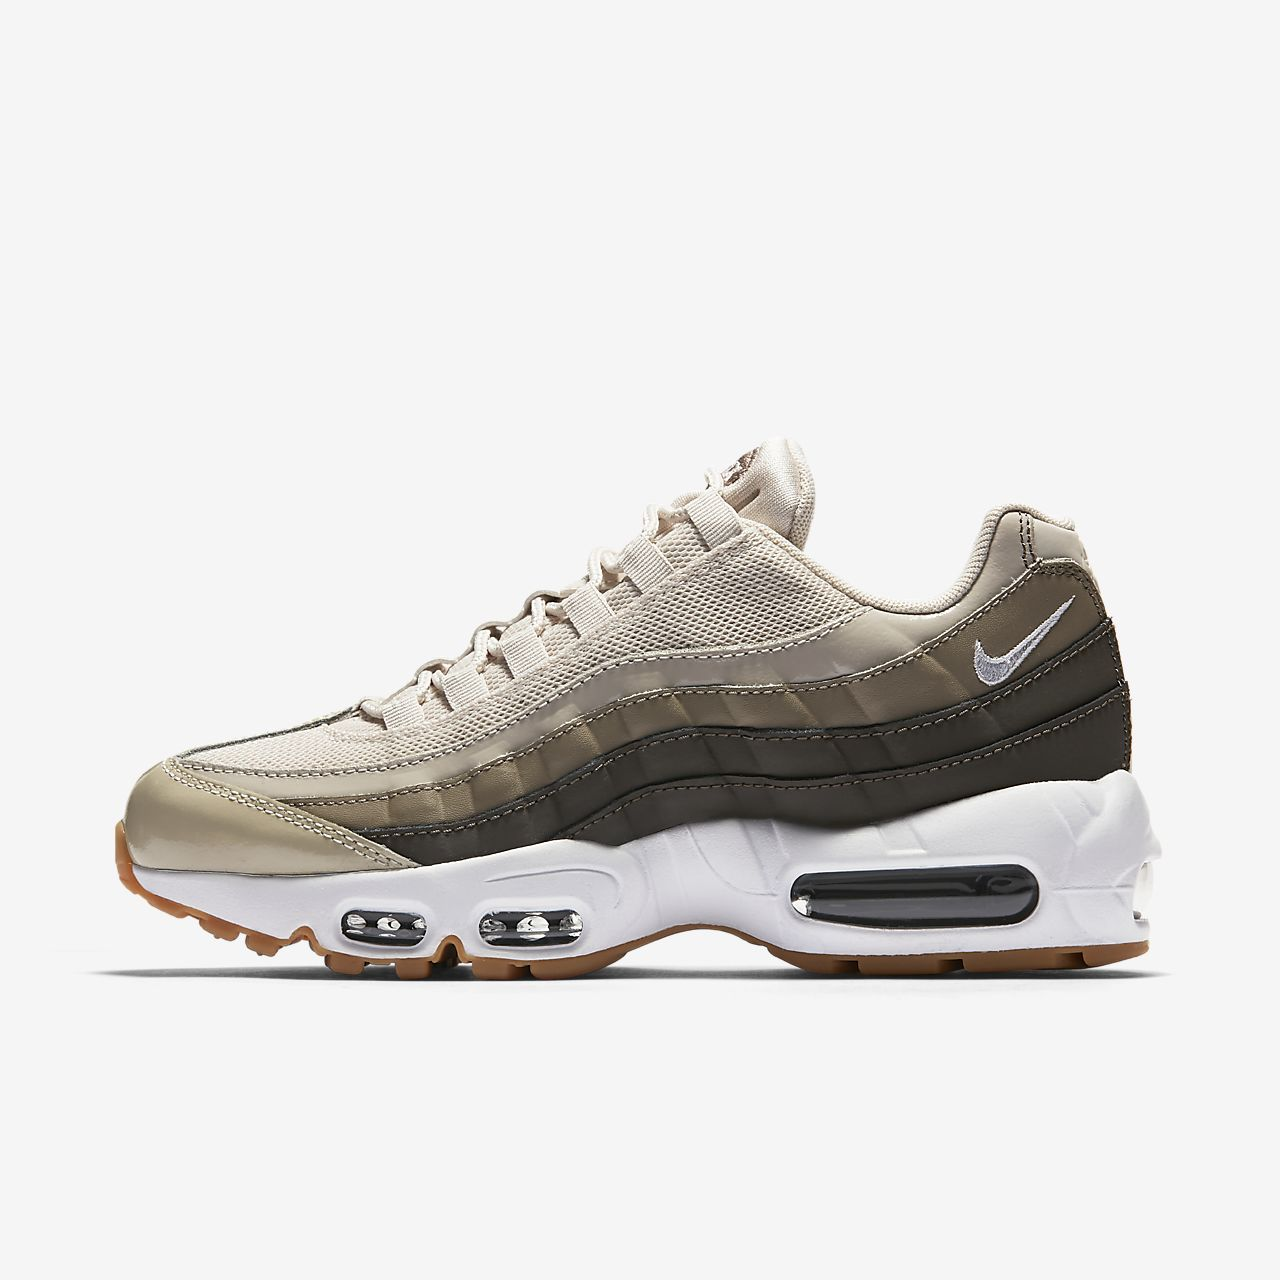 Nike Air Max 95 OG – Chaussure pour Femme